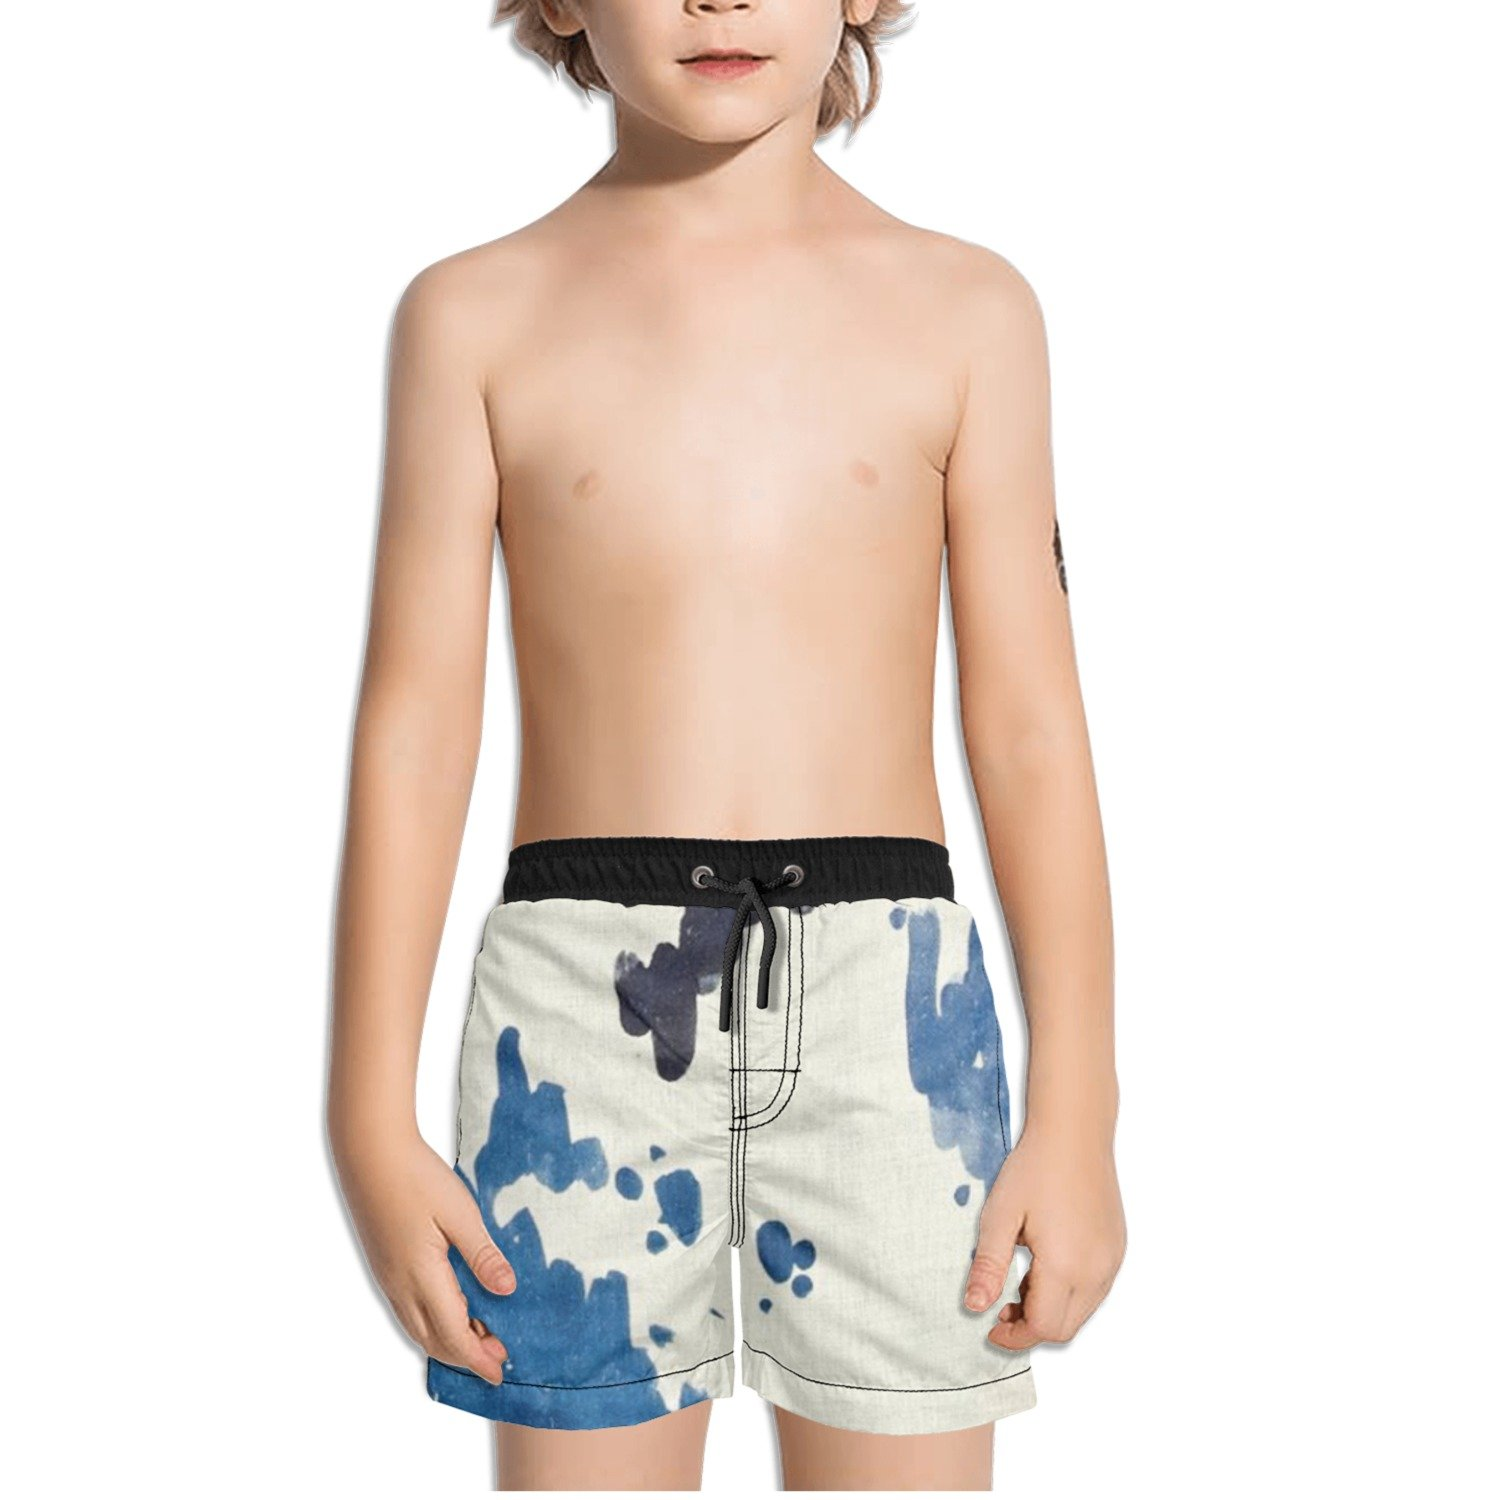 Ouxioaz Boys Swim Trunk Abstract Paint Blue Beach Board Shorts